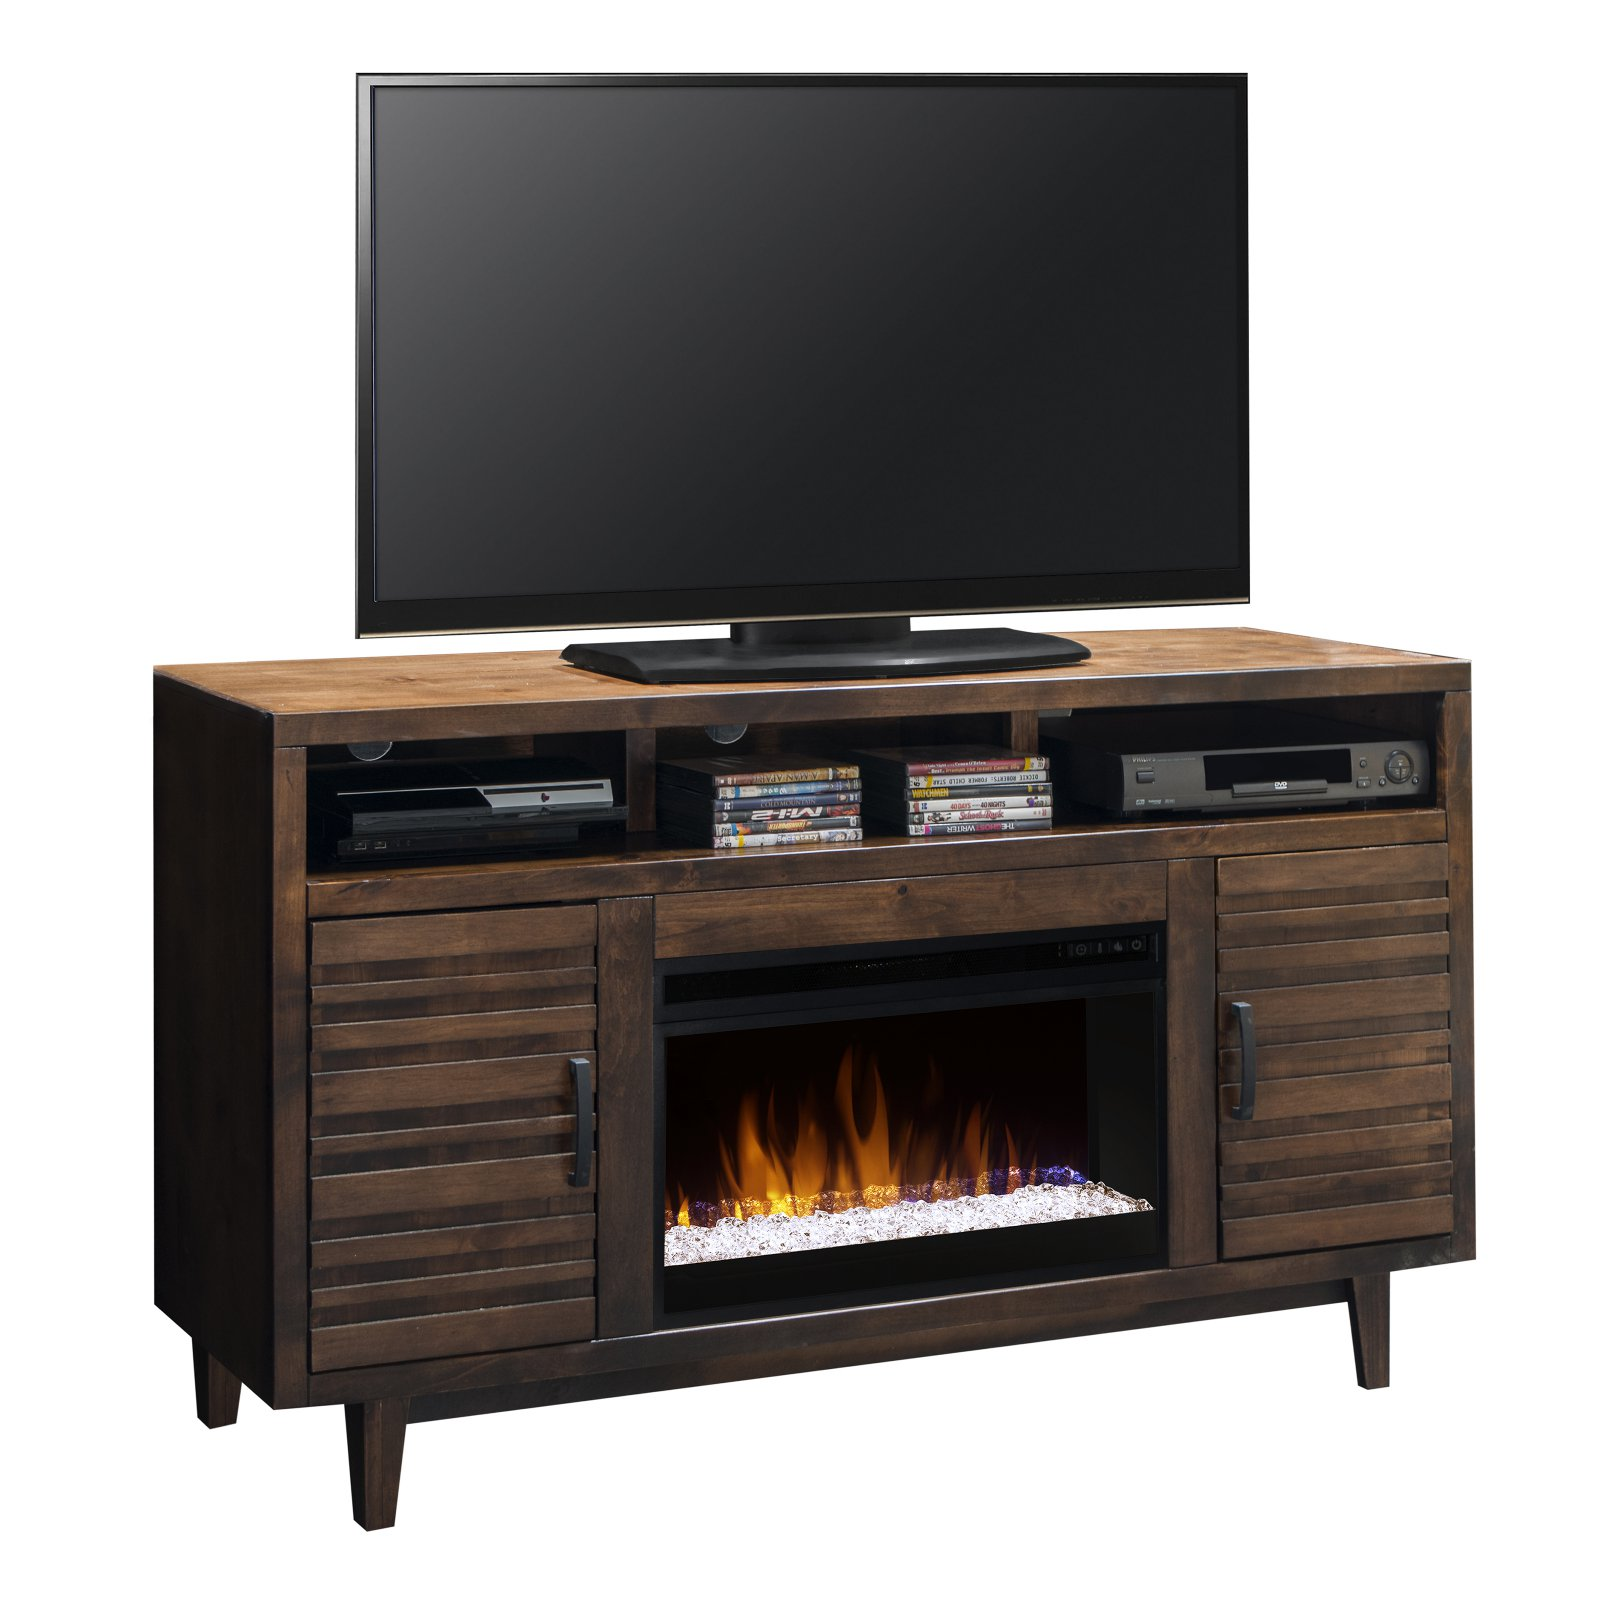 Legends Furniture Glendale 62 in. Electric Media Fireplace